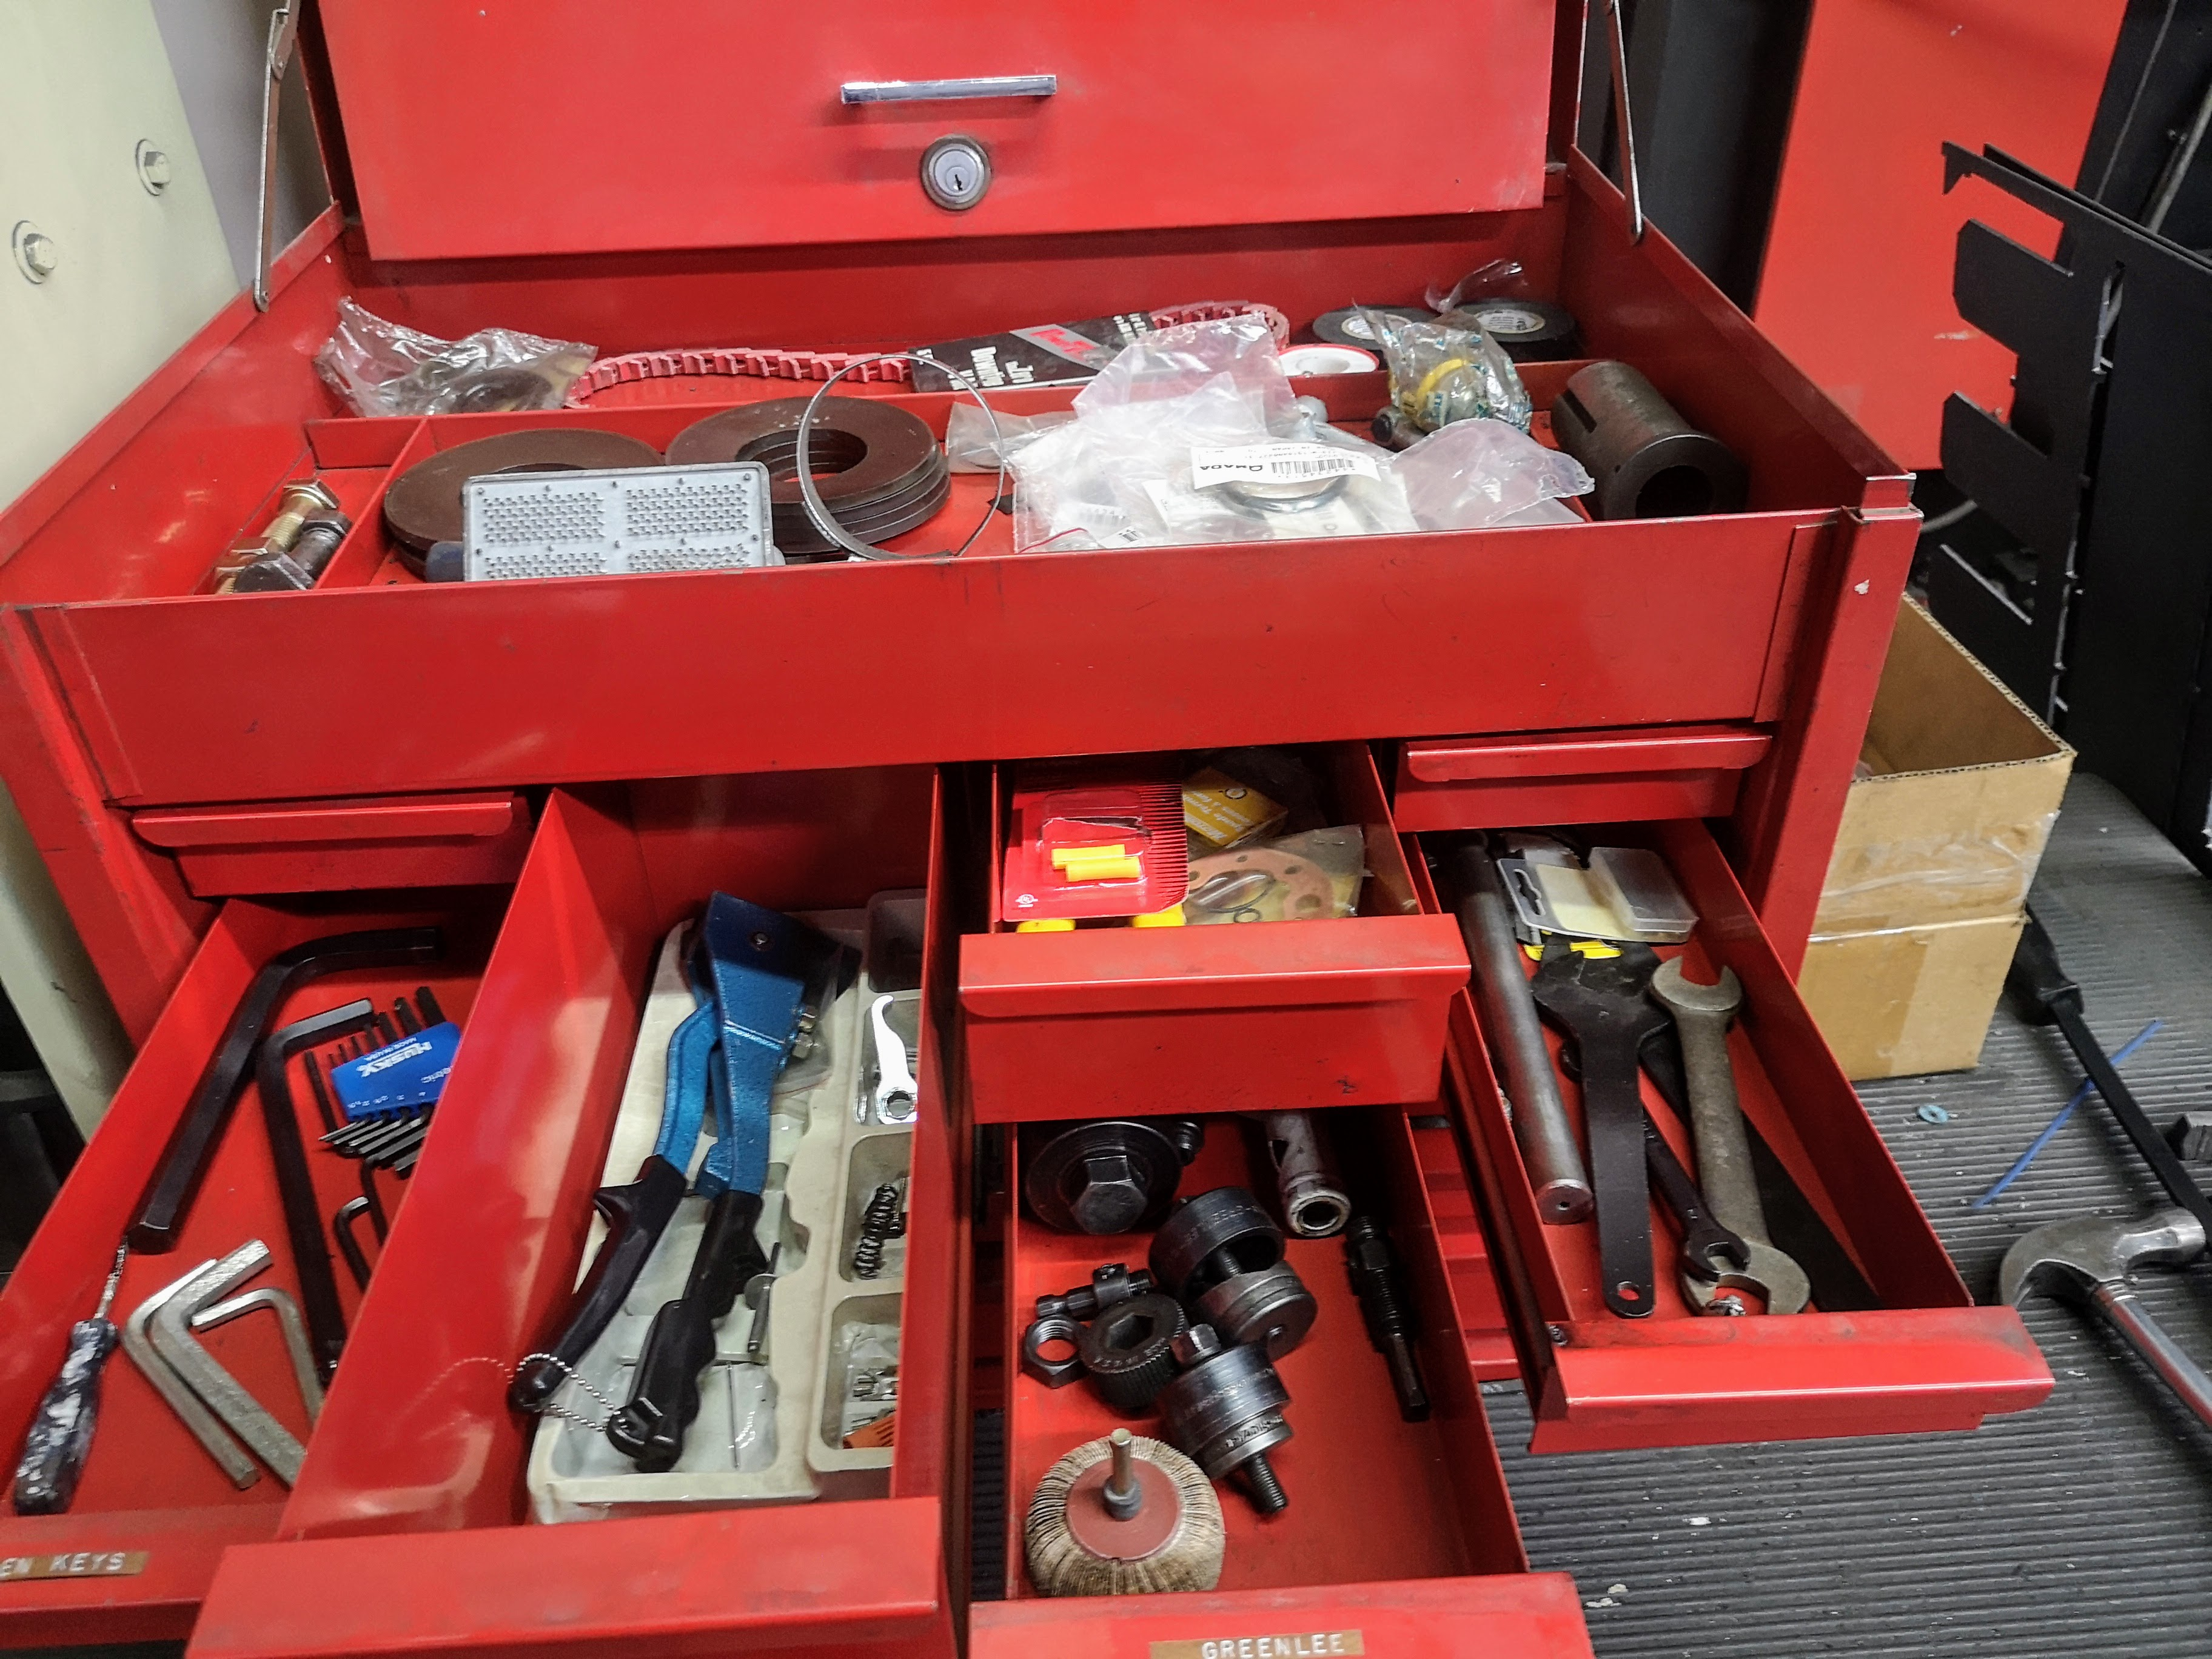 SNAP-ON 12-DRAWER TOOL CHEST W/ CONTENTS - Image 2 of 3